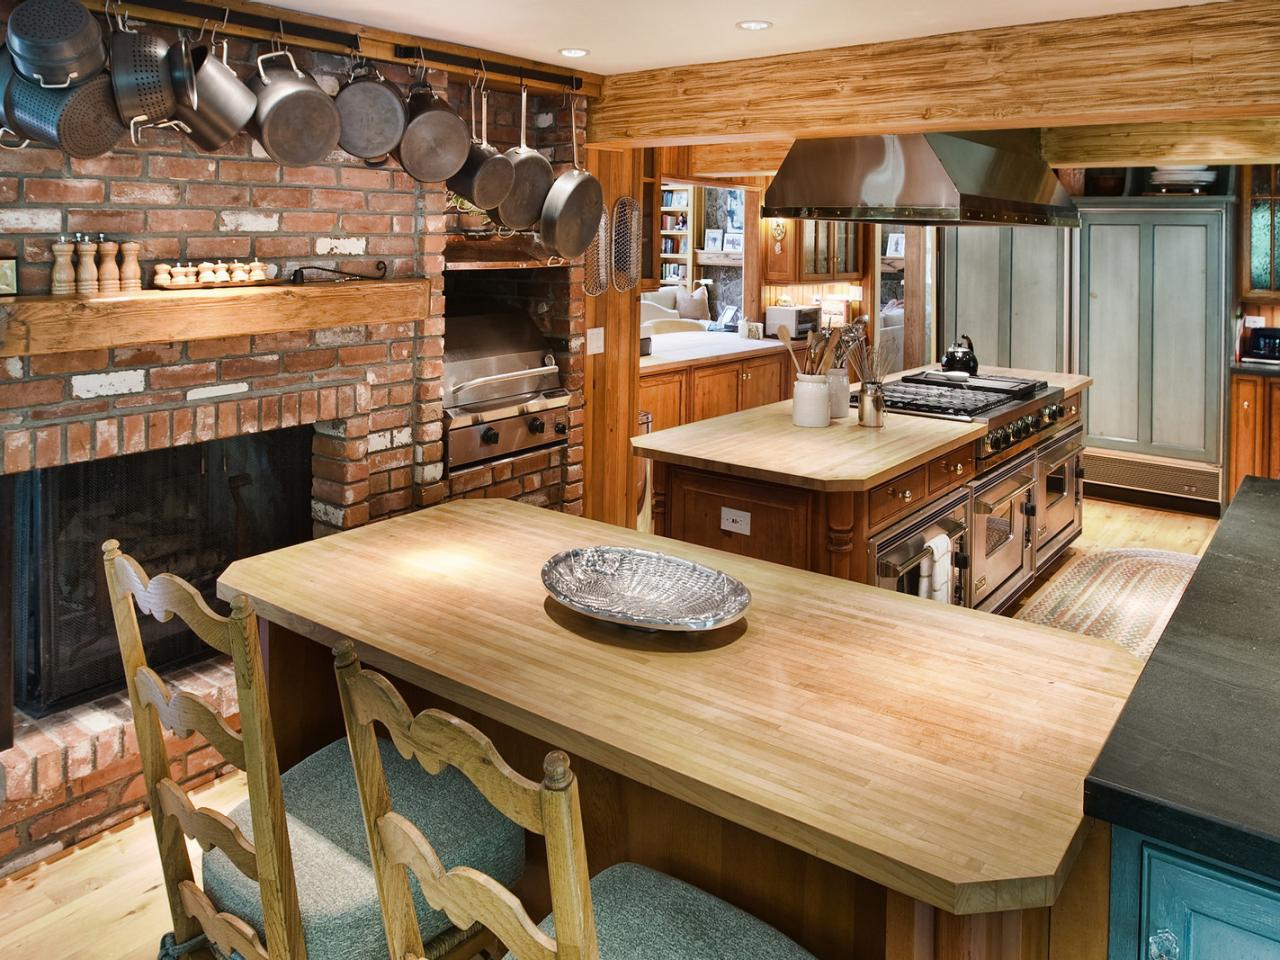 Country Kitchens: Options And Ideas